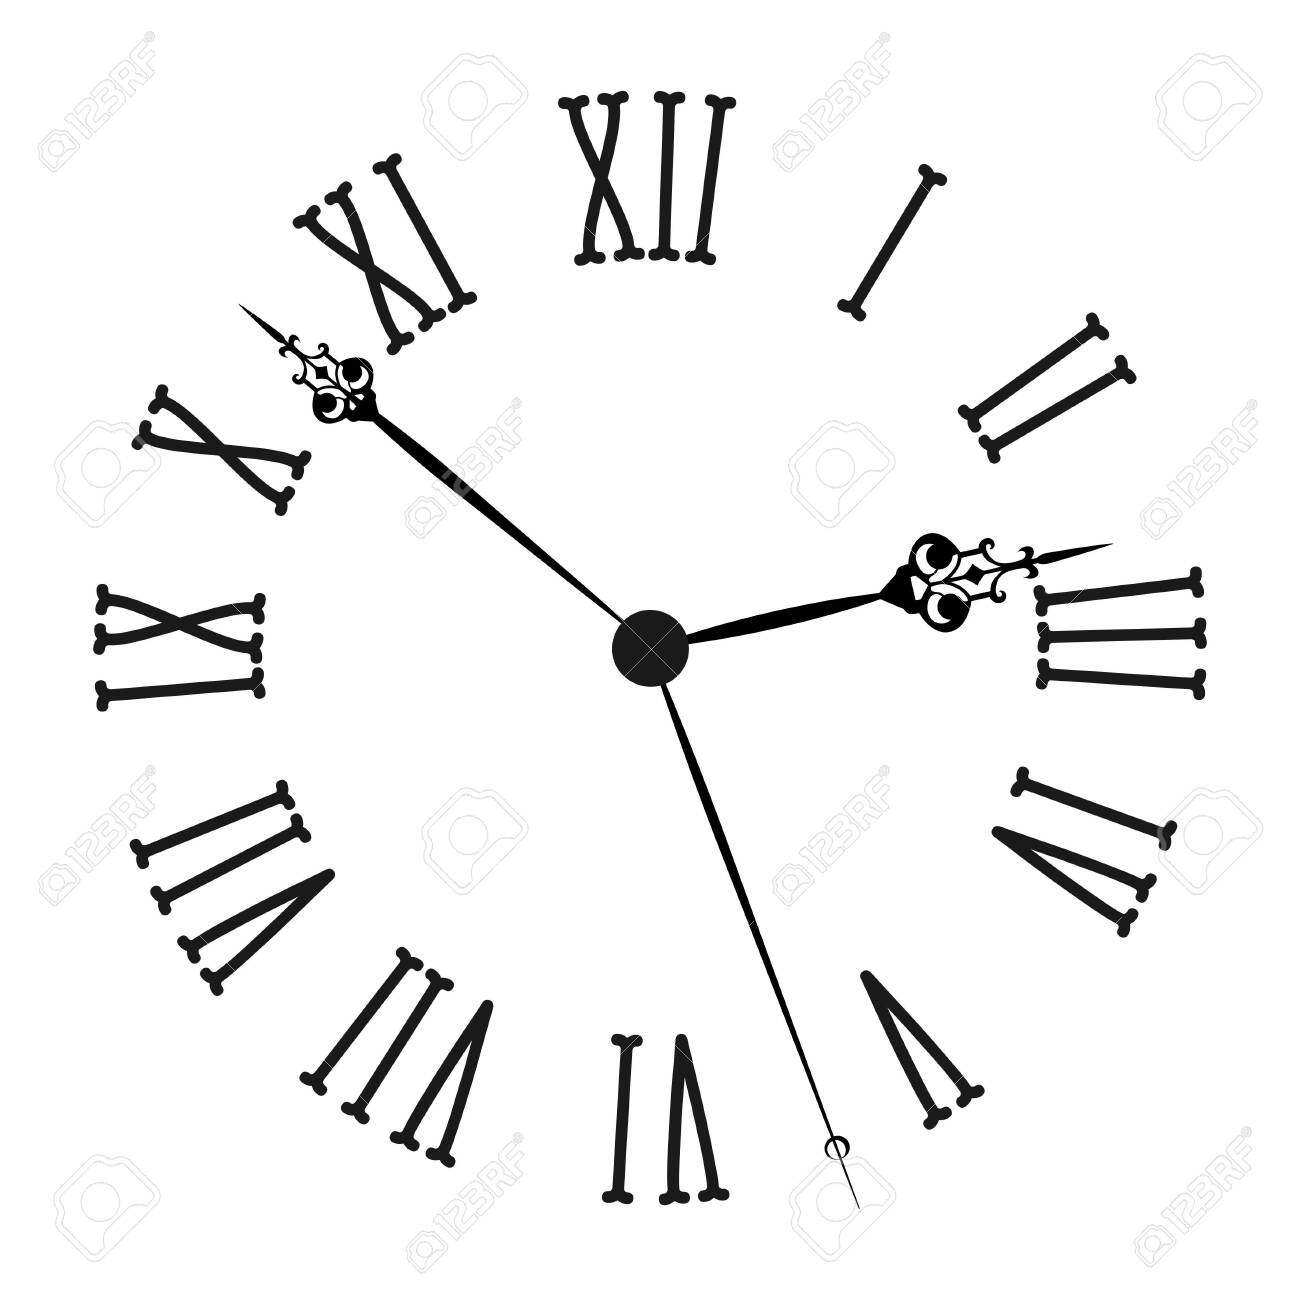 Vintage clock with roman numerals Old fashion isolated on white background. Vector illustration - 151457706